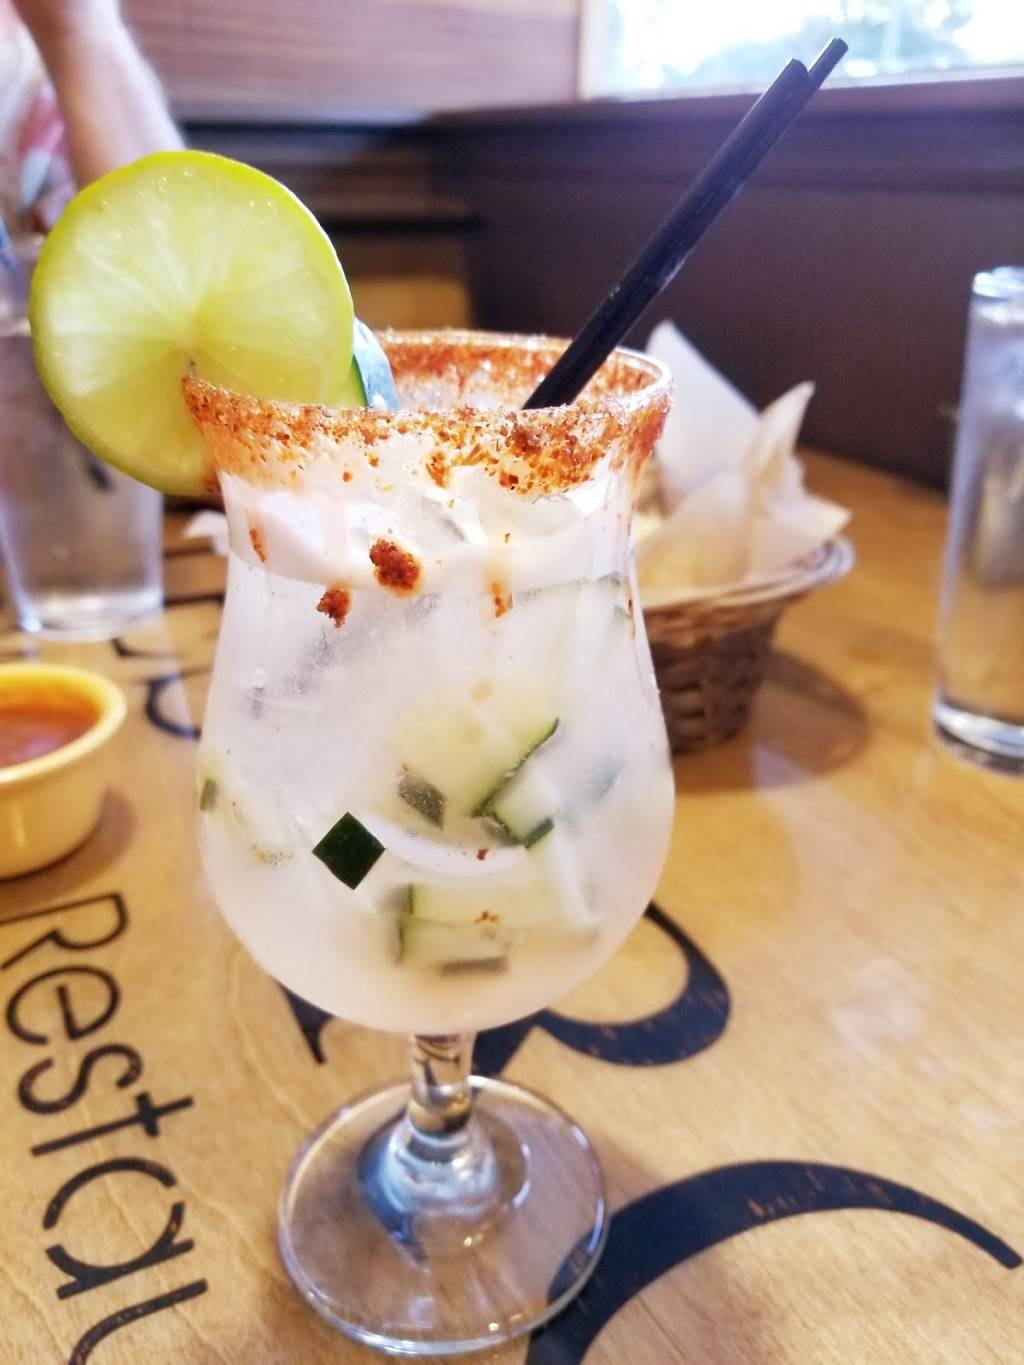 Tesoro fine Mexican restaurant | meal delivery | 1687 Lander Ave, Turlock, CA 95380, USA | 2096208475 OR +1 209-620-8475